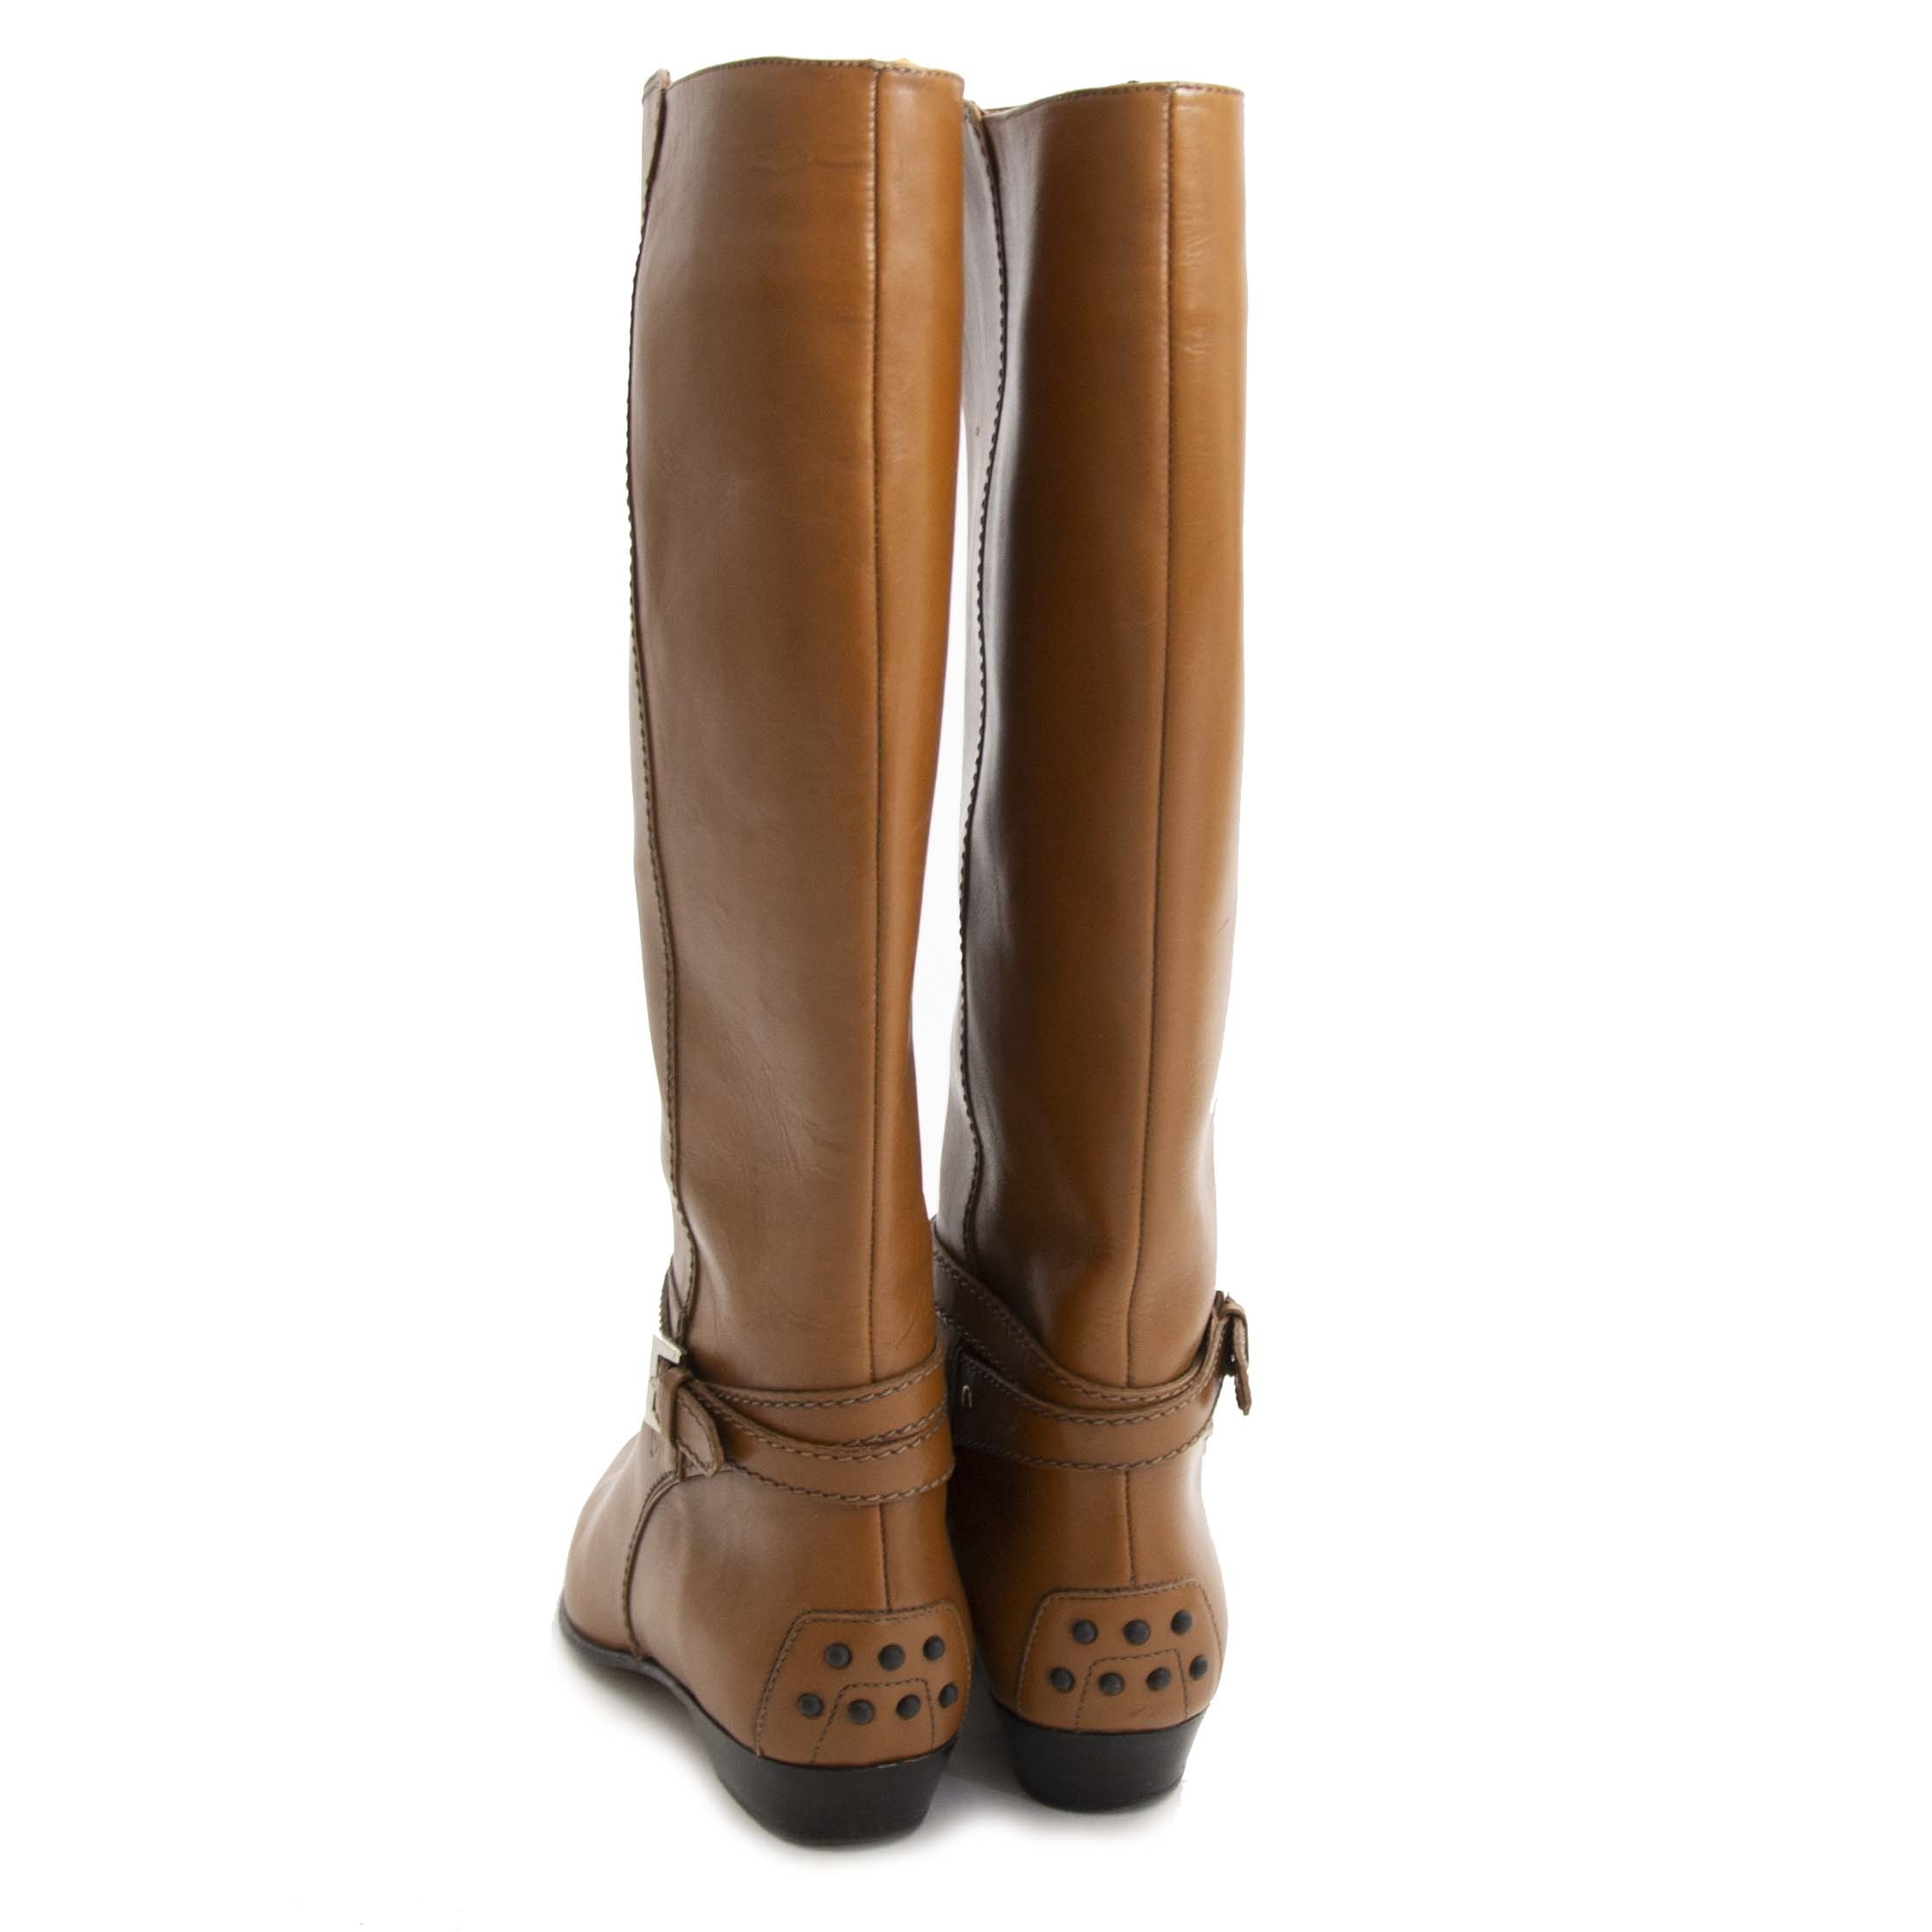 Tod's Brown Boots - 37 For the best price at LabelLov. Pour le meilleur prix à LabelLOV. Voor de beste prijs bij LabelLOV.